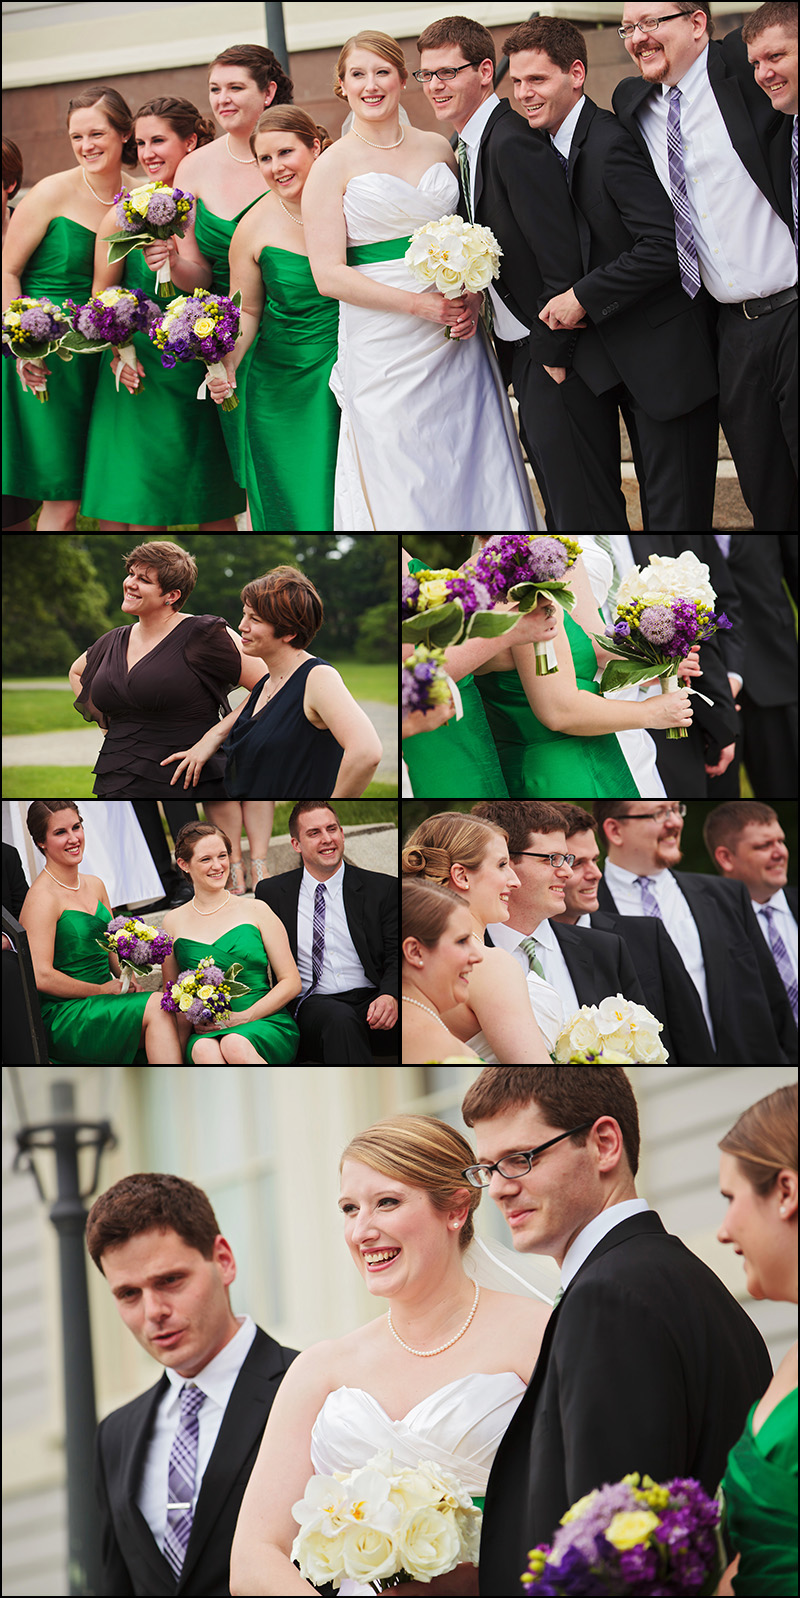 WEDDING PHOTOGRAPHERS IN MA LYMAN ESTATE WEDDING